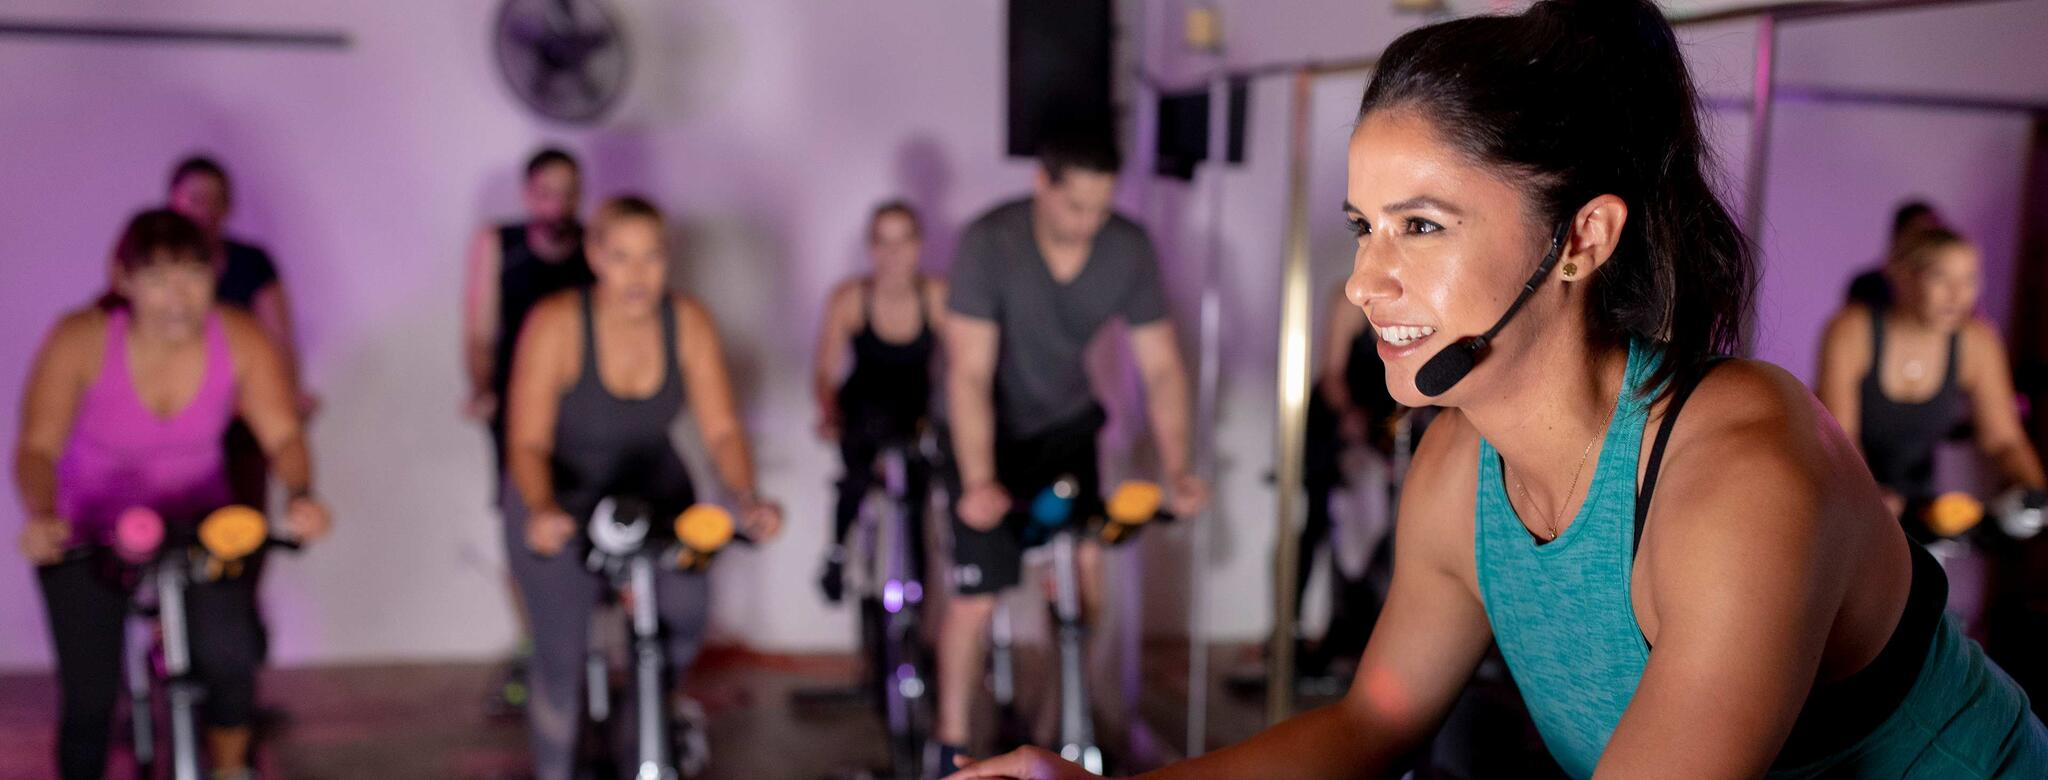 Instructor teaches a cycle class